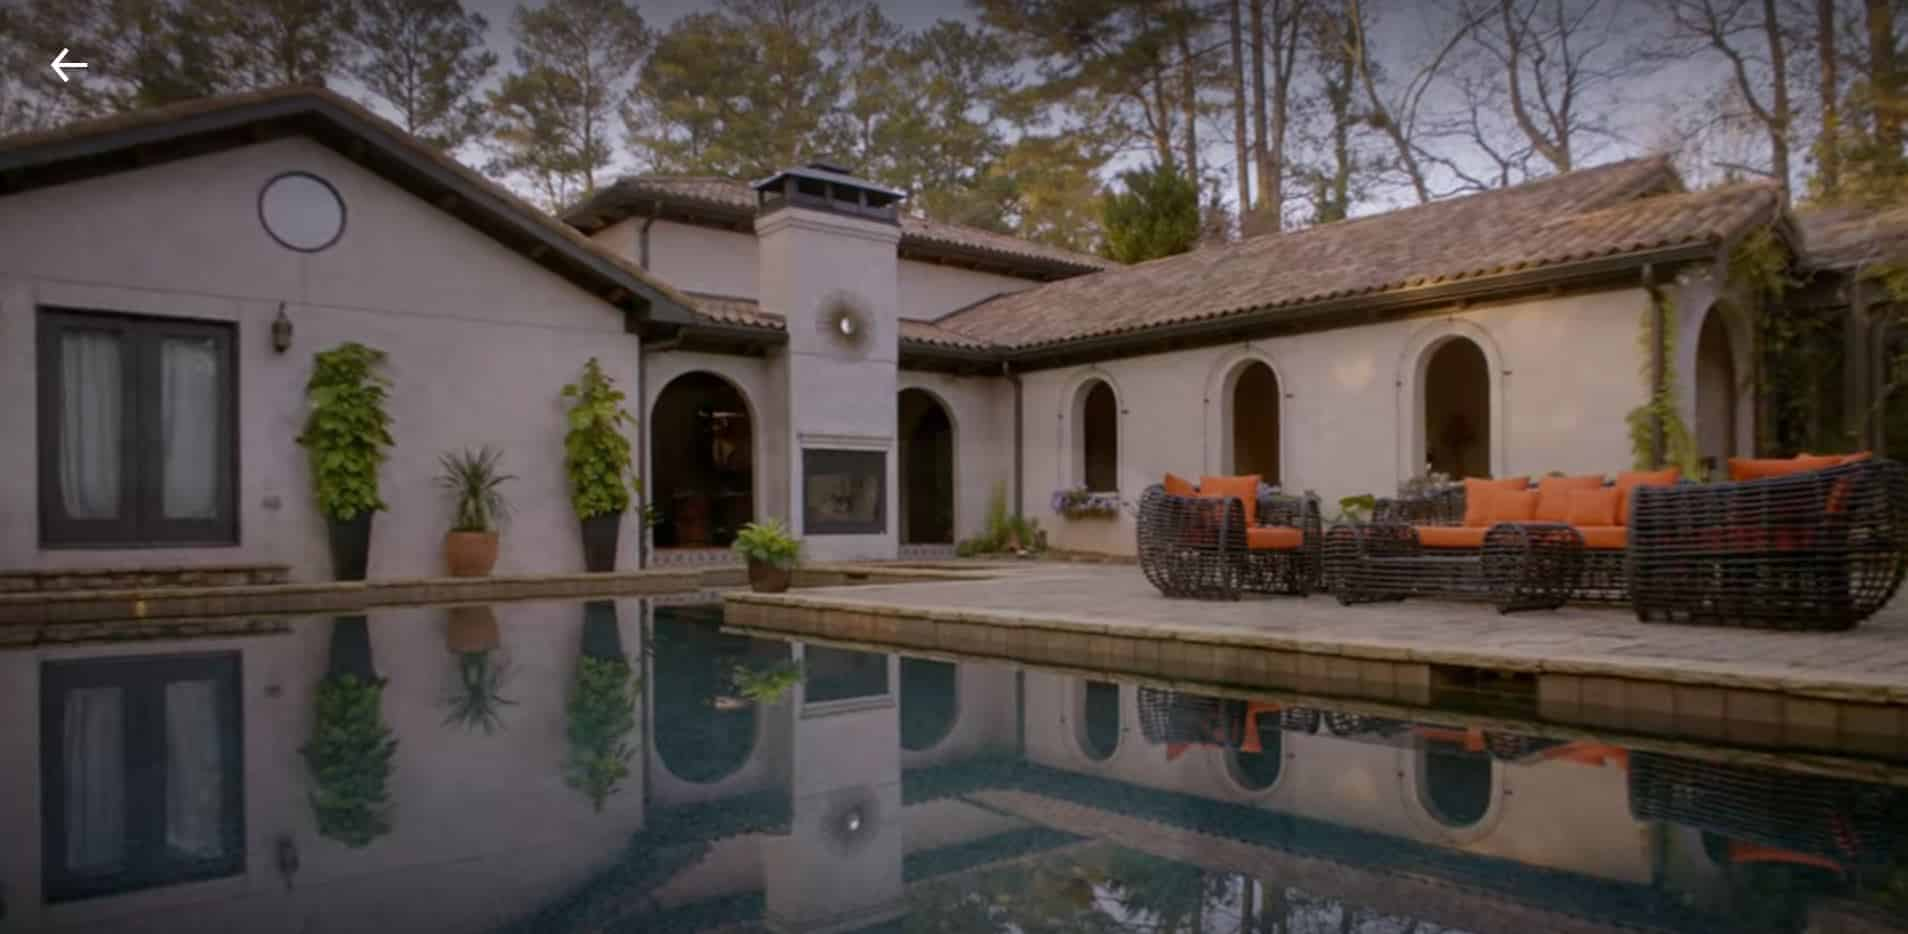 Daniel LaRusso's house and pool in Cobra Kai.